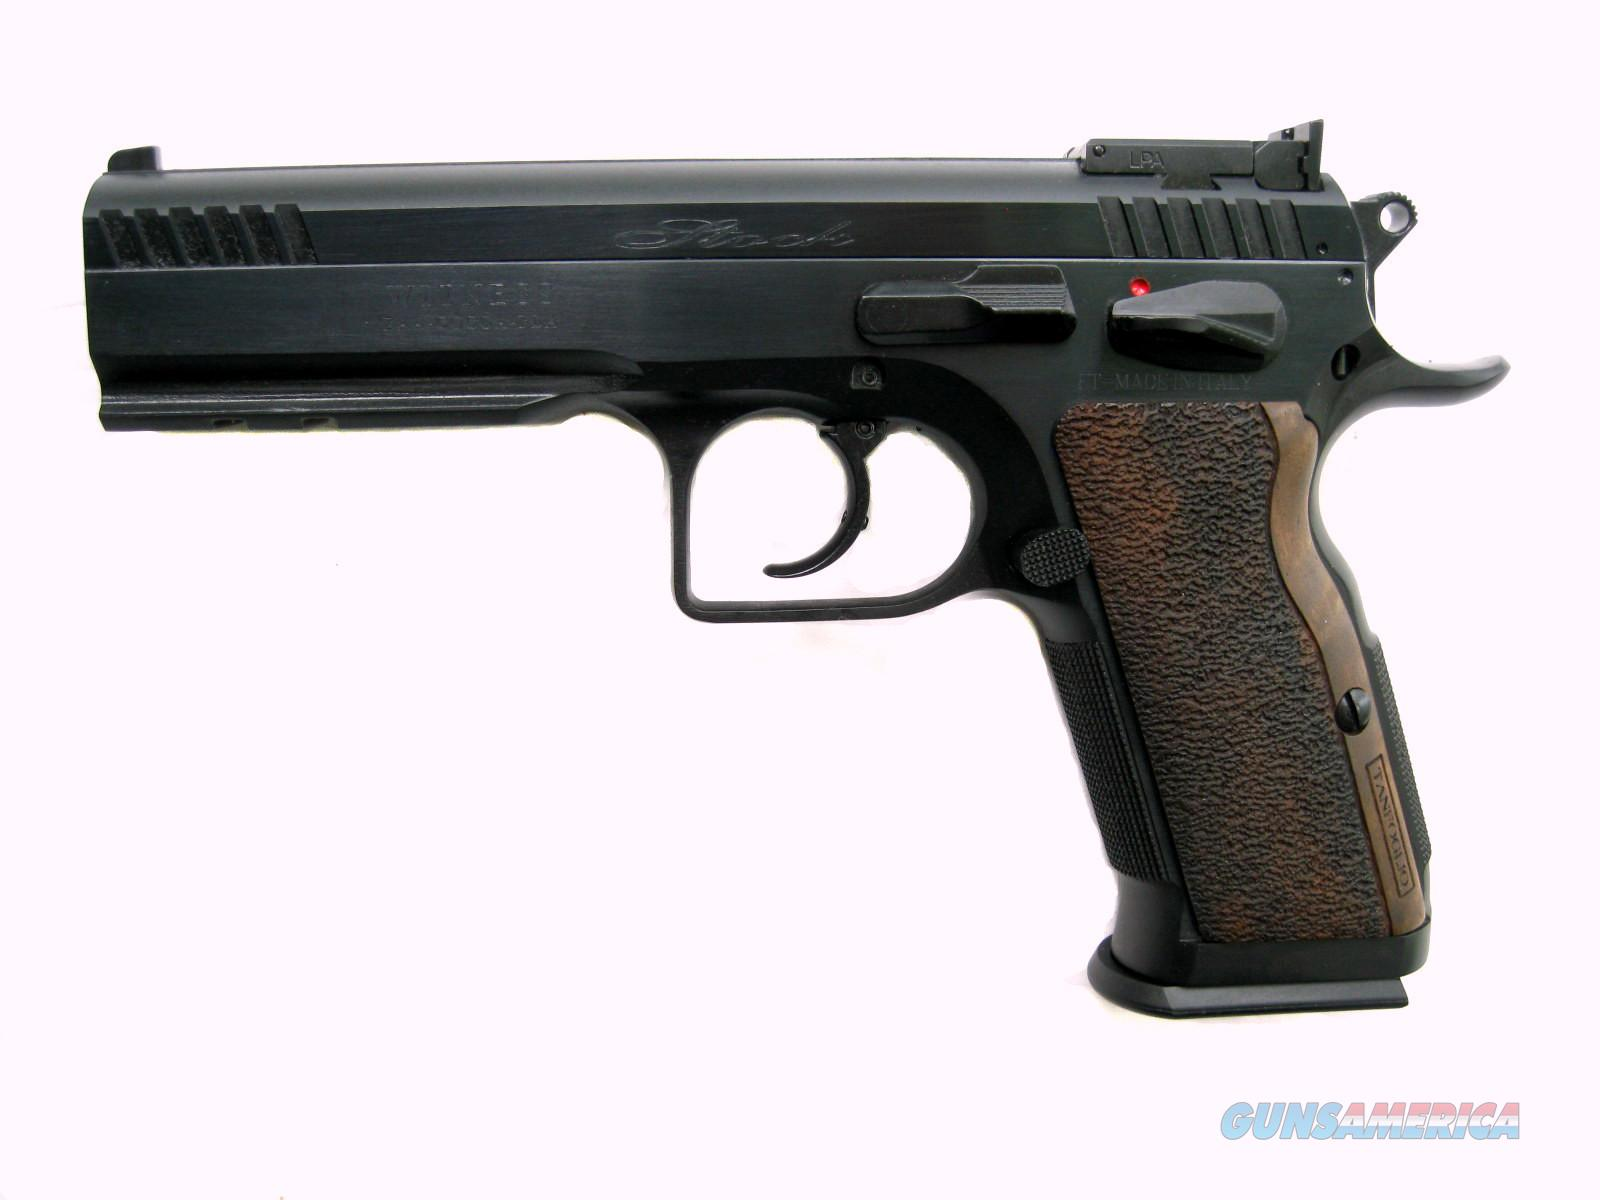 EAA Stock III 9mm Tanfoglio Elite Series Bull Barrel Rail 600595  Guns > Pistols > EAA Pistols > Other